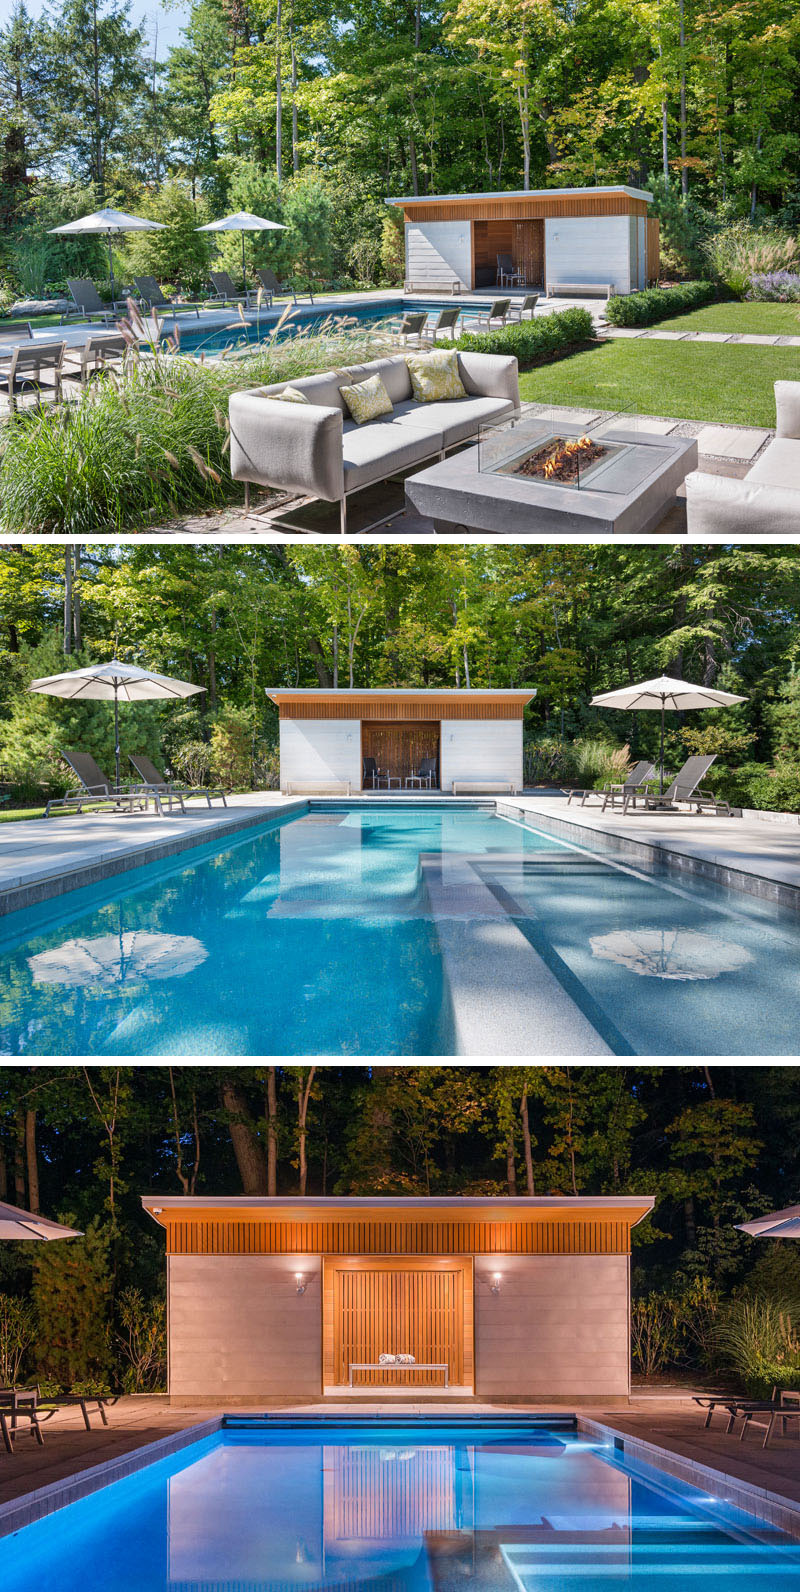 At the end of this modern landscaped backyard and pool, there's a cabana that's been built using zinc panels and cedar, and becomes a focal point for the pool area.